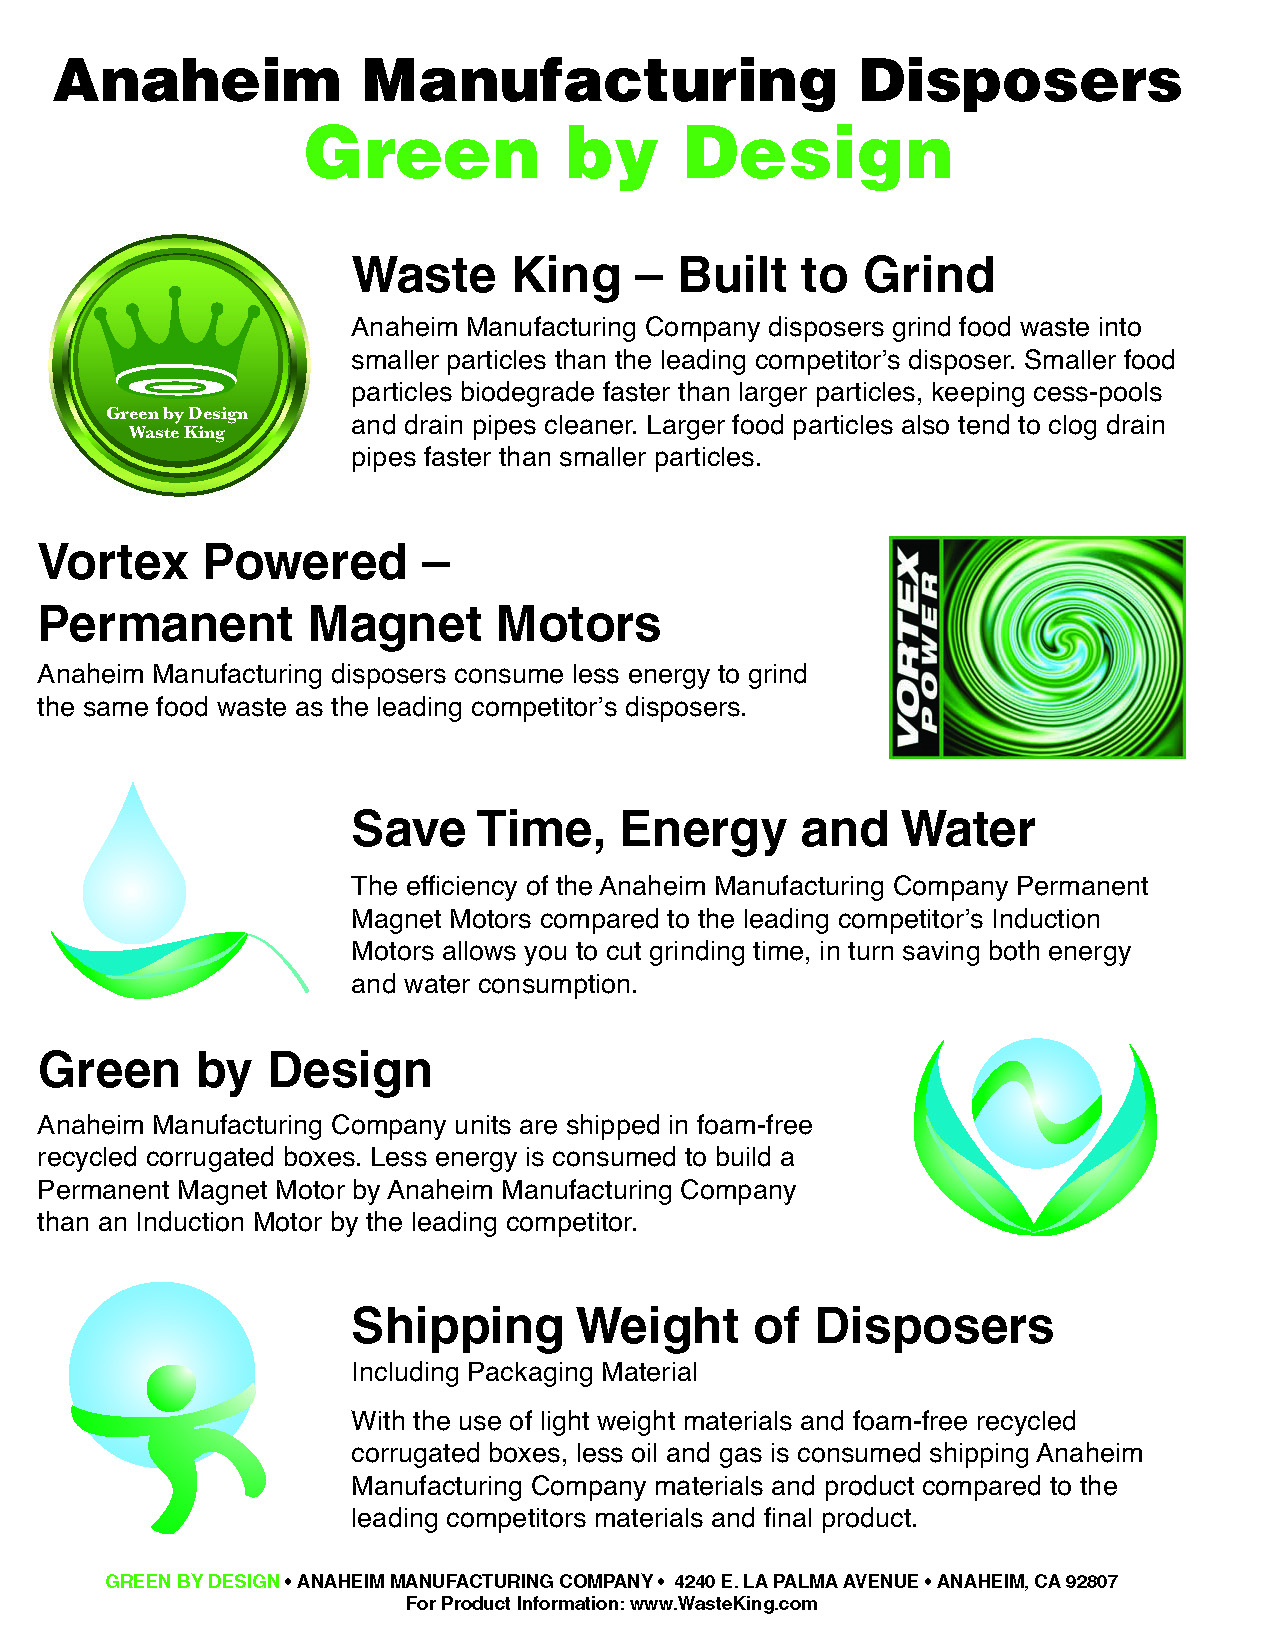 Green features of waste king's design